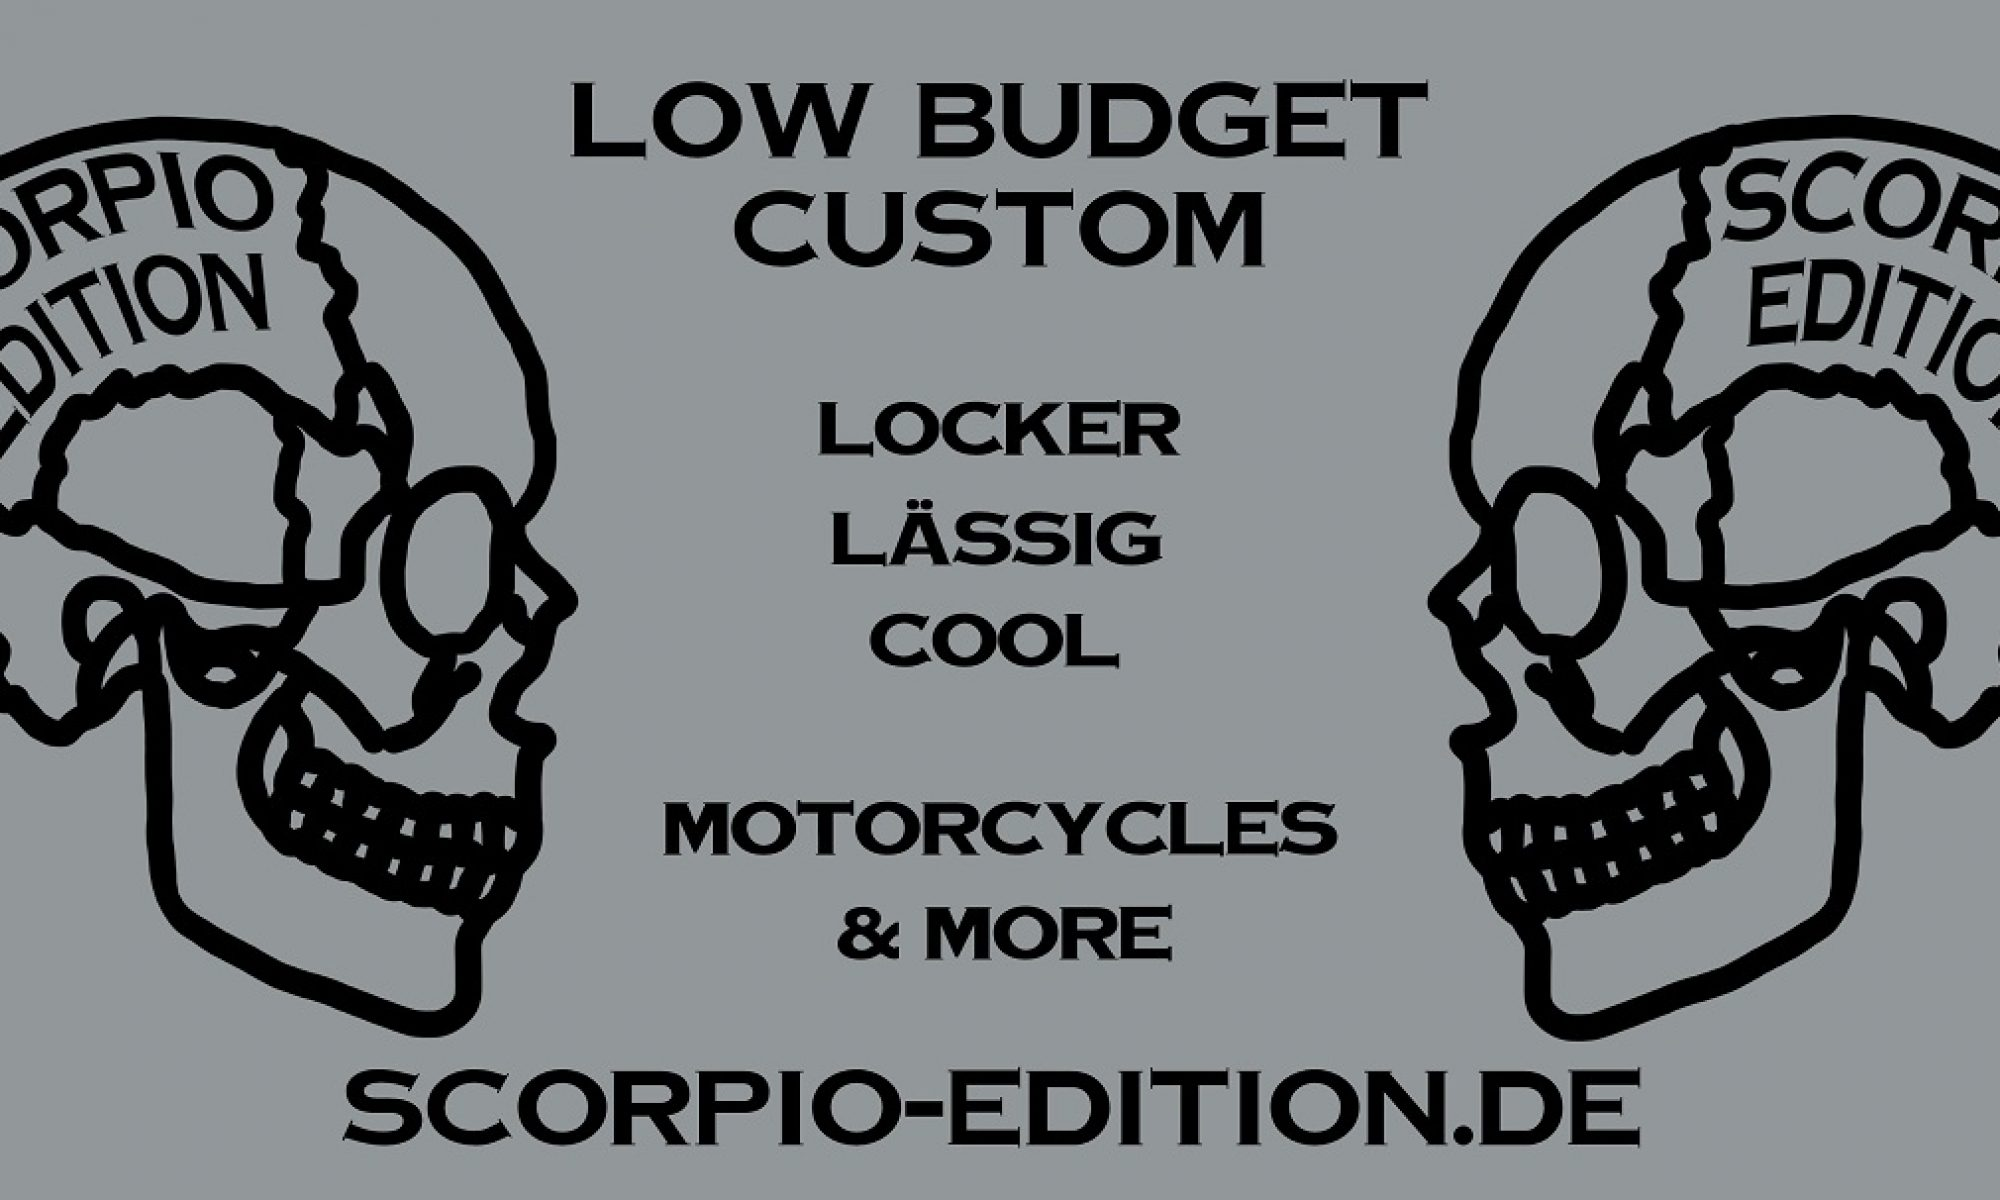 low budget custom by scorpio